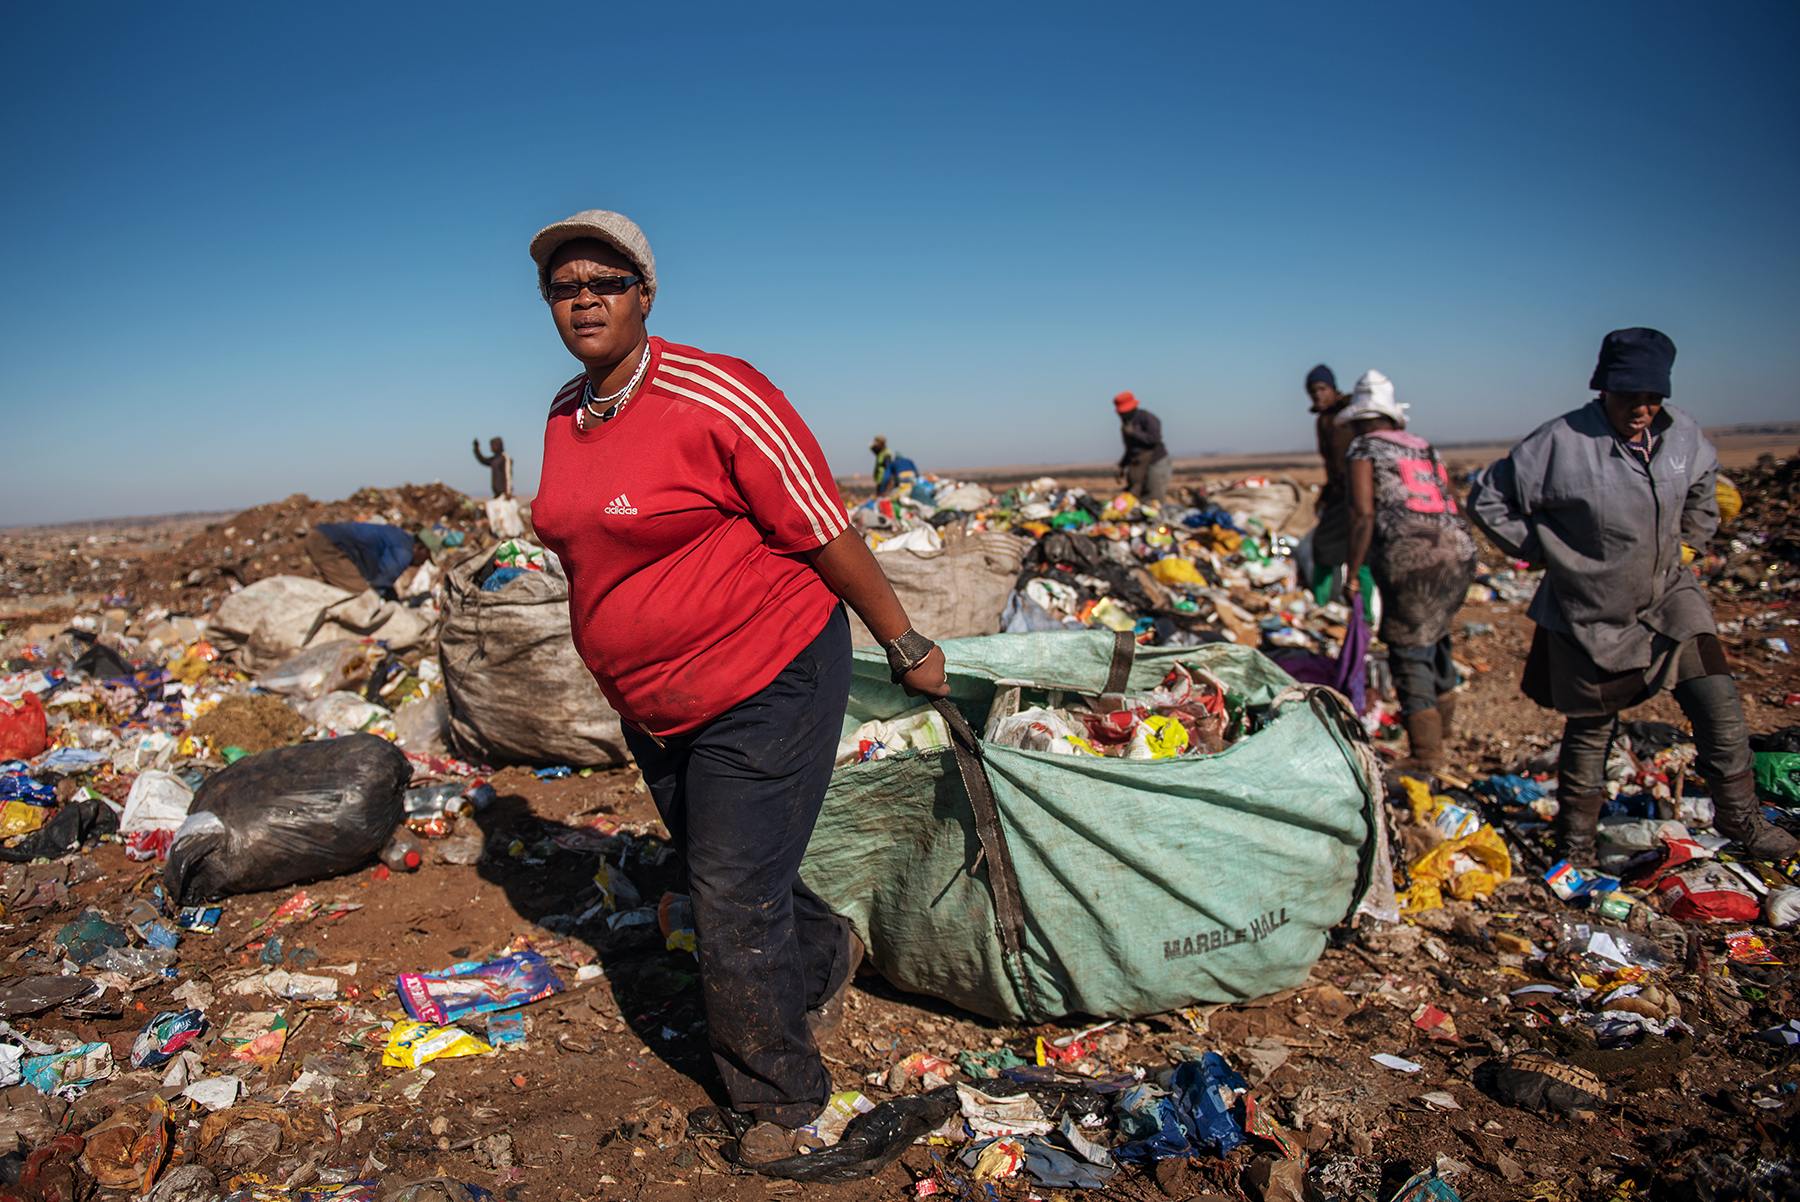 Eva Mokoena (L), a 33 years old South African informal waste picker, drags a sack filled up of waste dumped by a garbage truck at the Palm Springs landfill in the outskirt of Johannesburg, South Africa, on June 28, 2019.